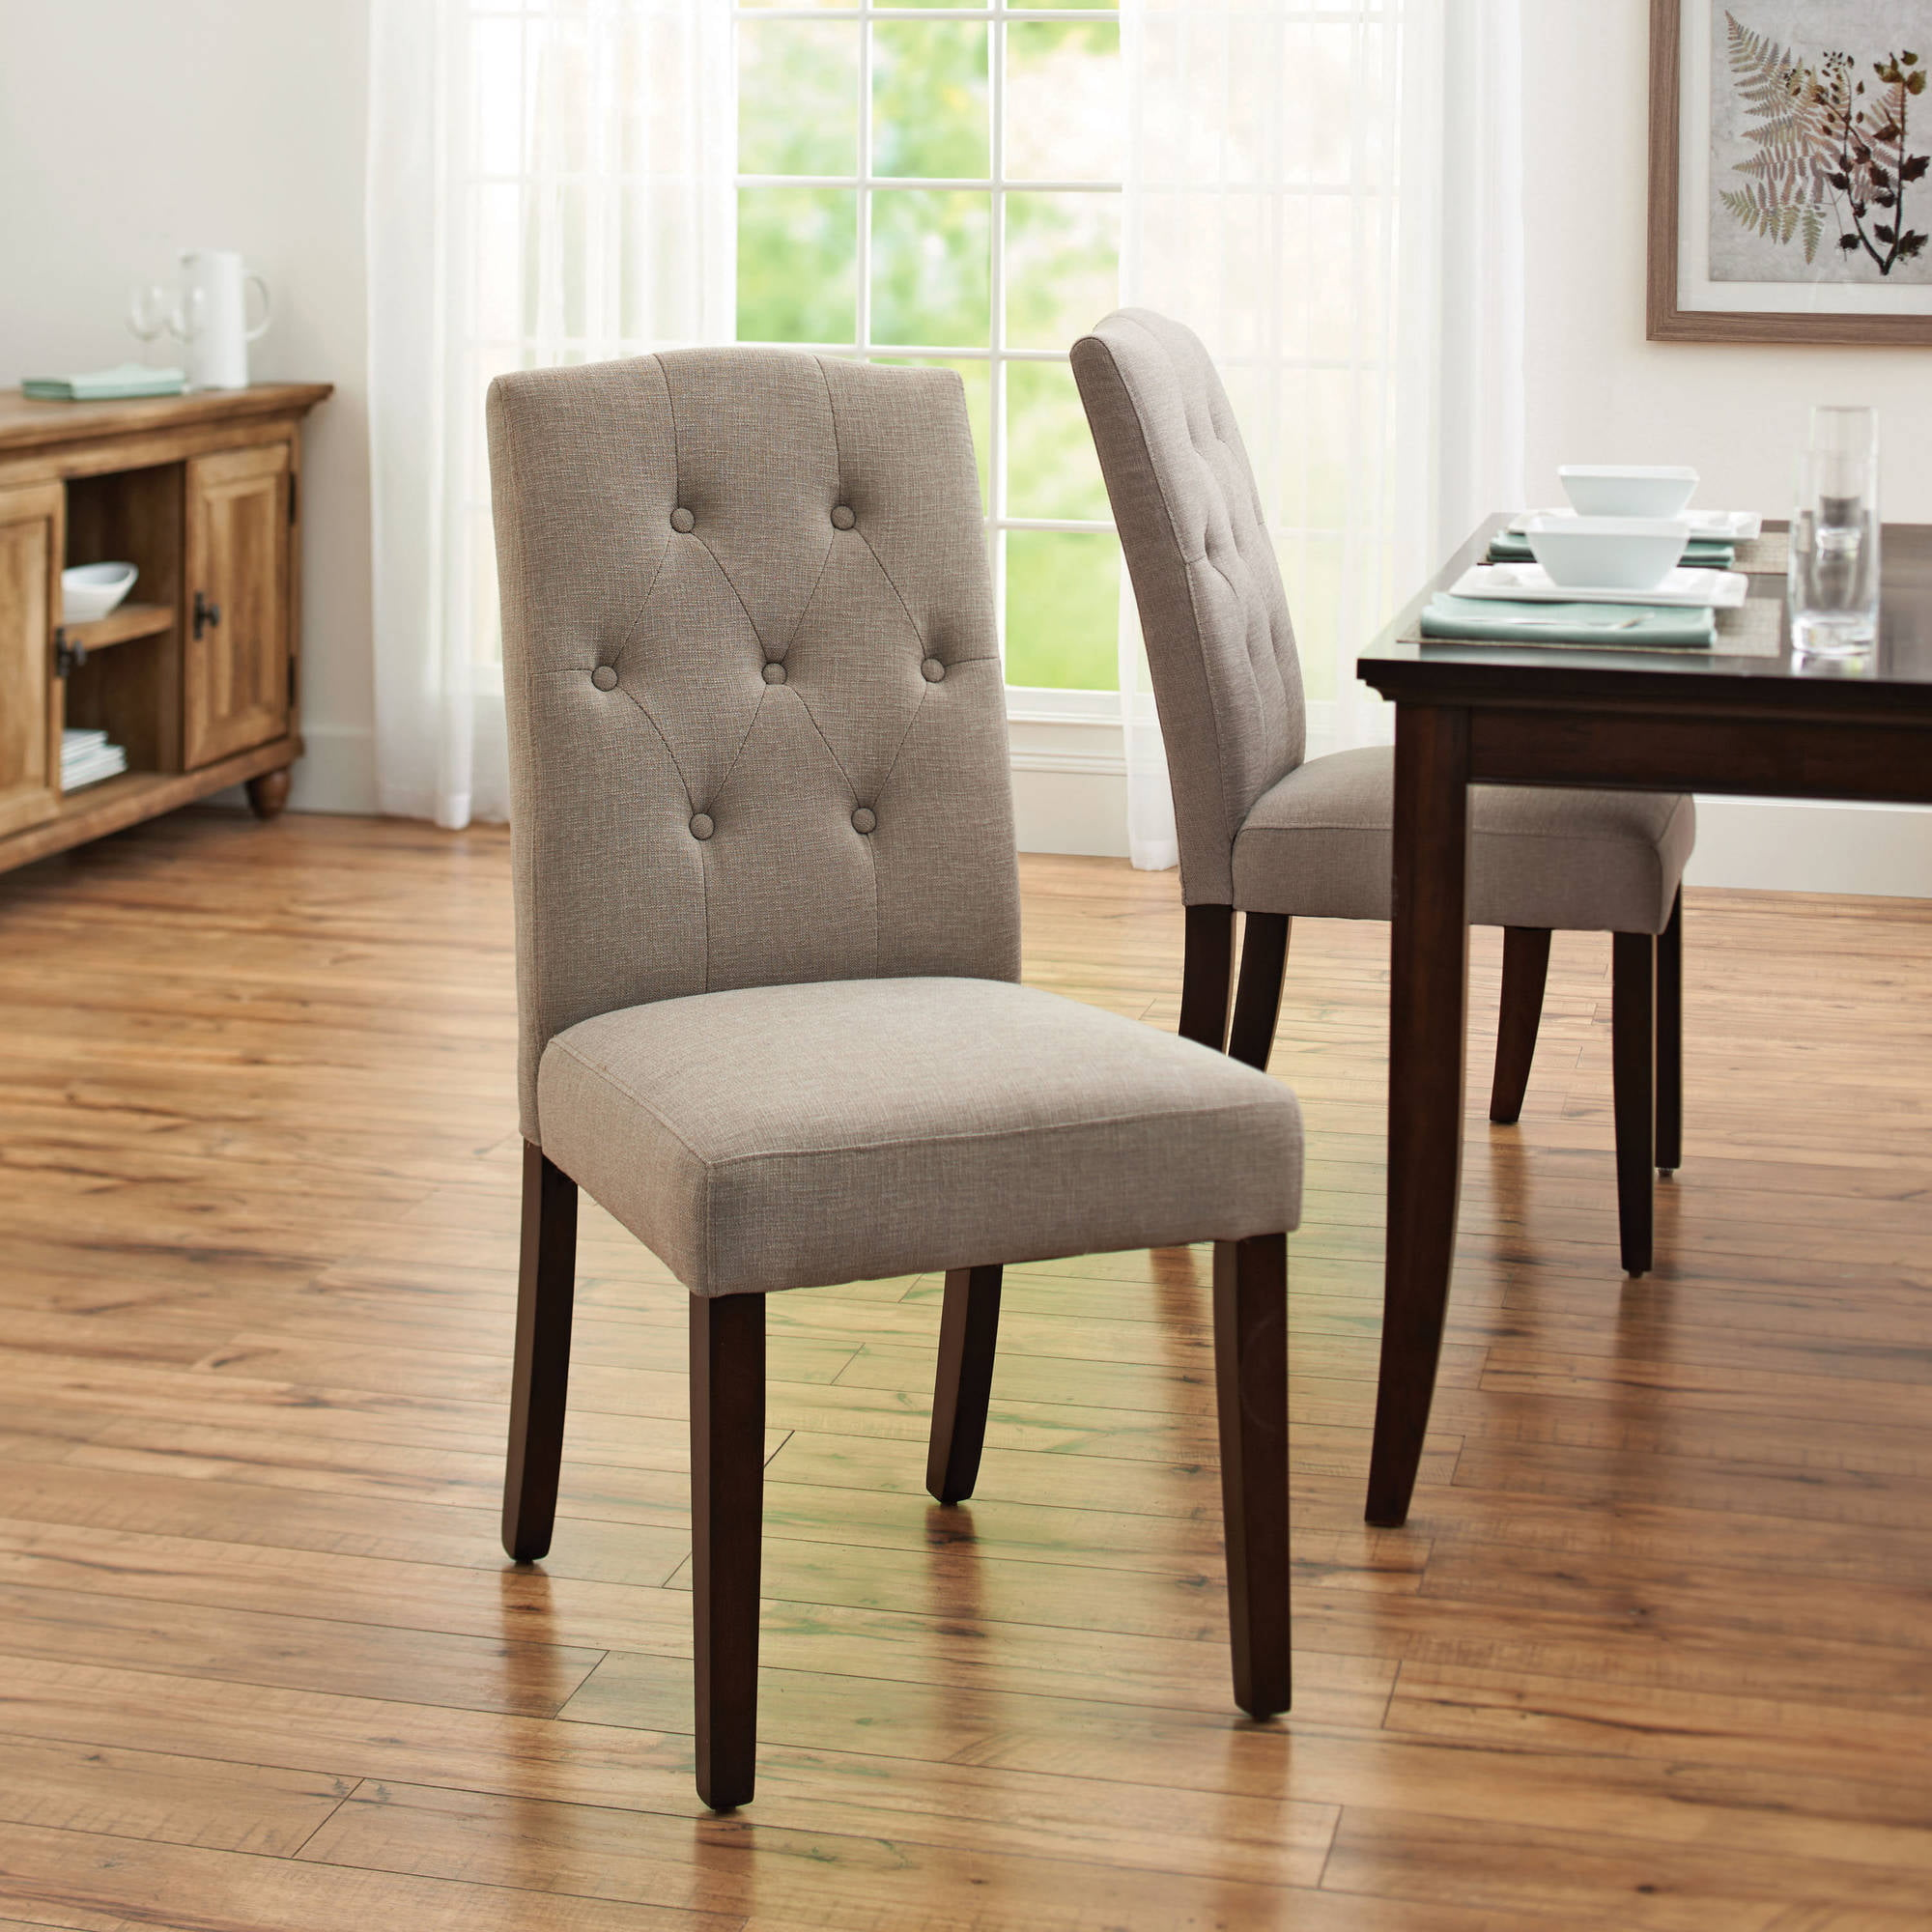 Attirant Better Homes And Gardens Parsons Tufted Dining Chair, Multiple Colors